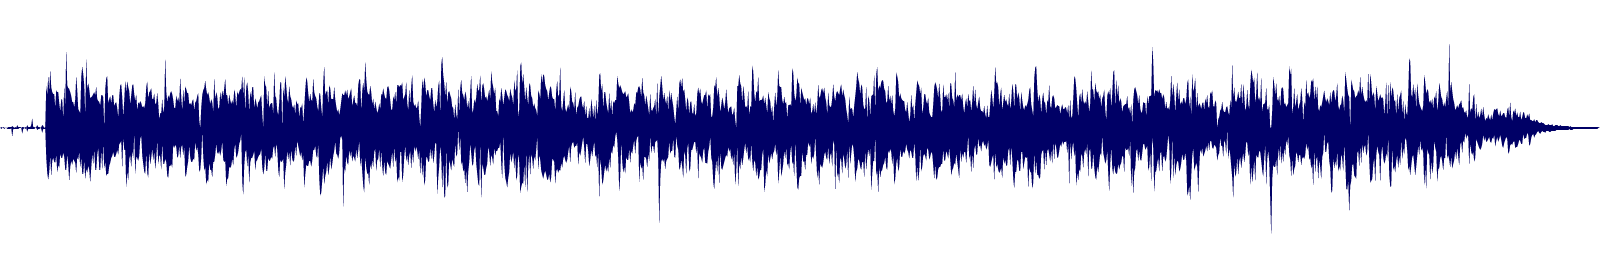 waveform of track #136856